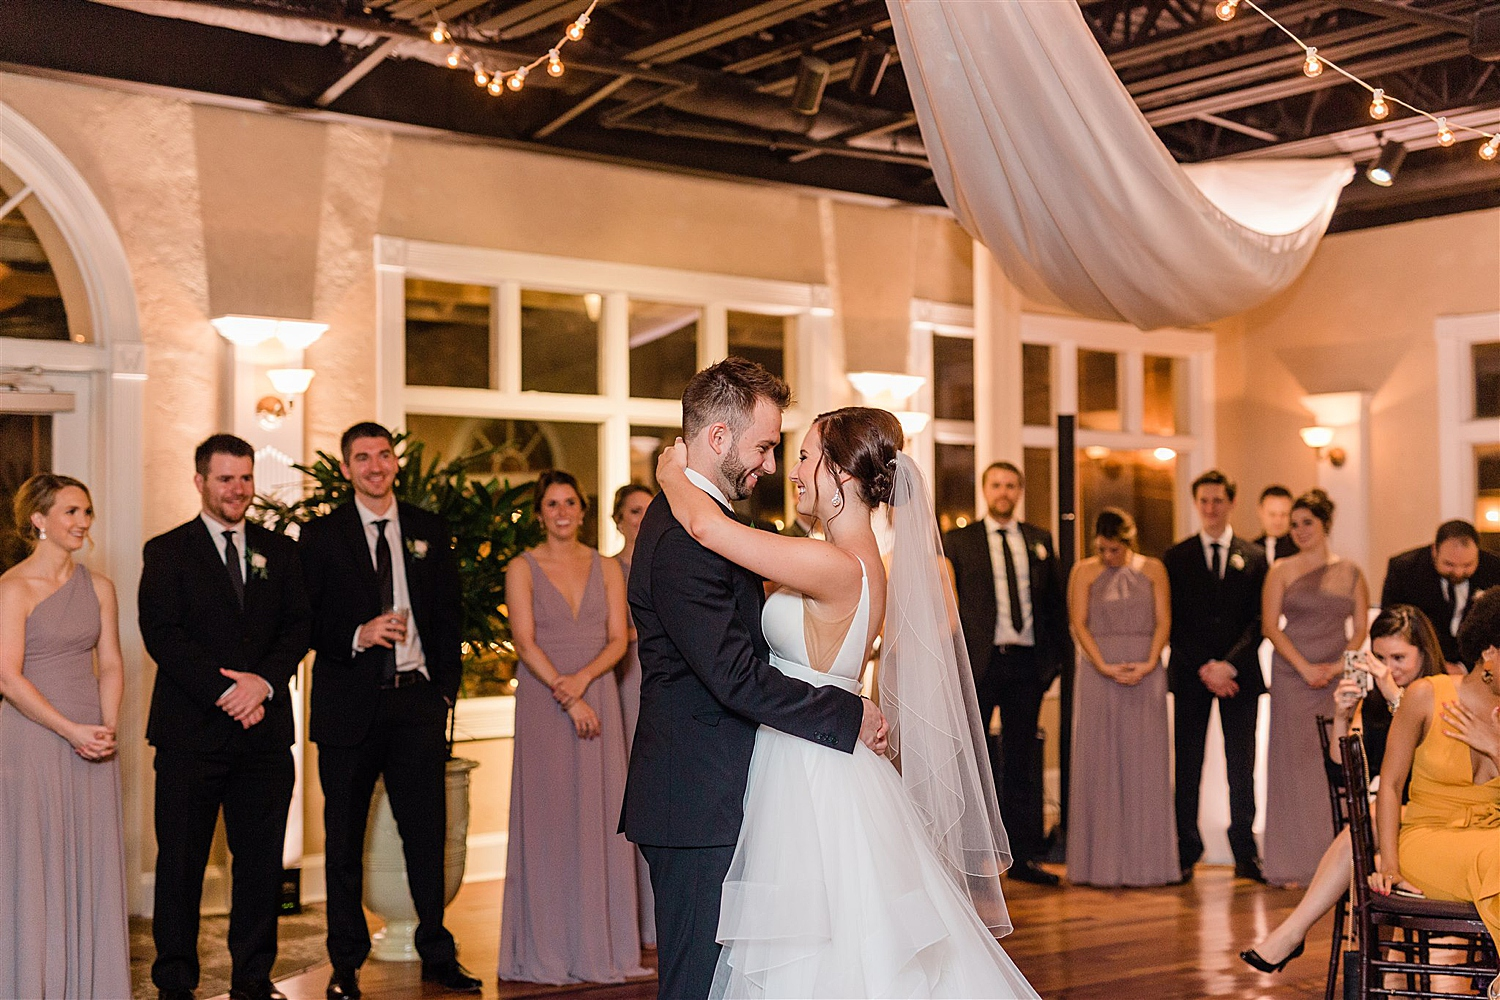 Bride and groom share their first dance at the white room while guests watch